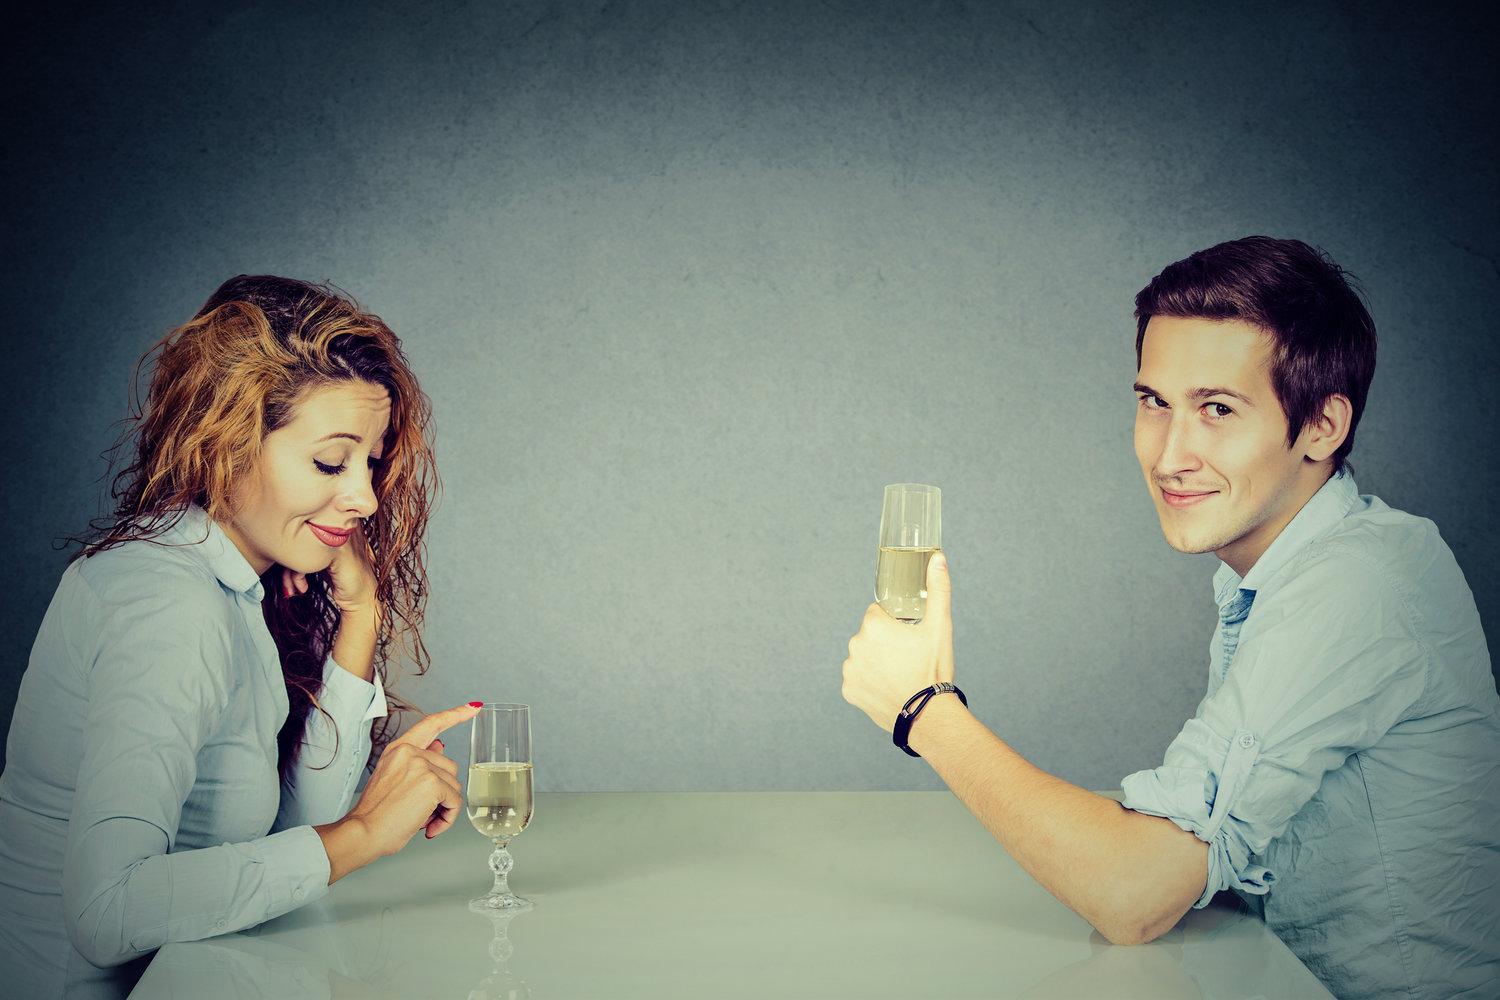 speed dating event rules